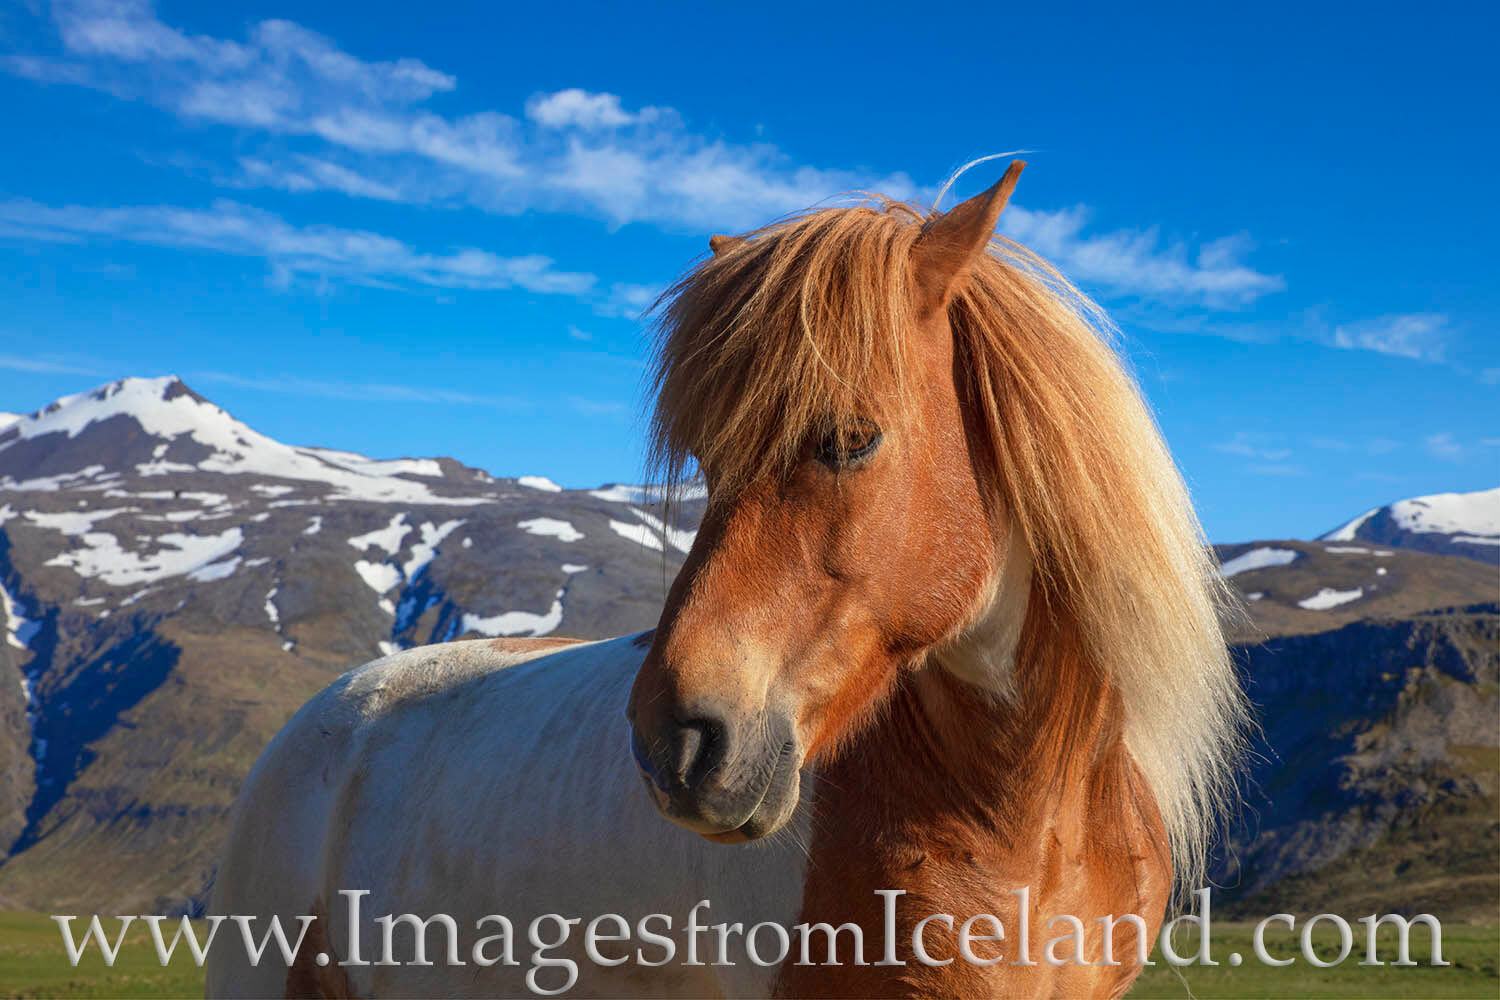 The Icelandic horse was brought to the country in the 9th and 10th centuries by Norse settlers. Today, the breed is pure. Icelandic...